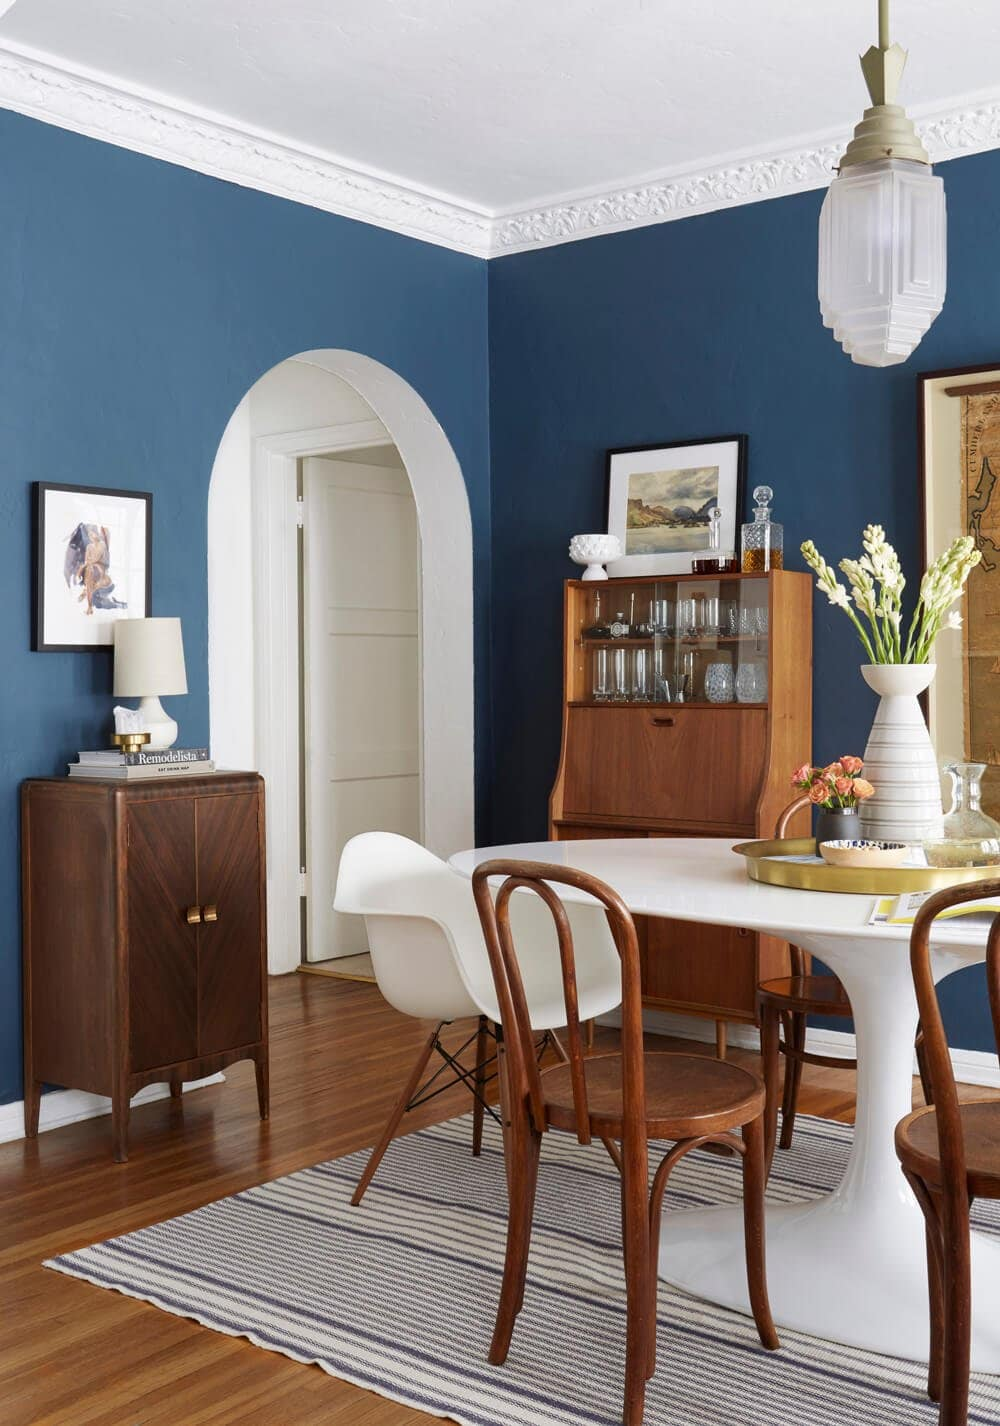 Tye Street Project: Blue Dining Room Plans - Thou Swell